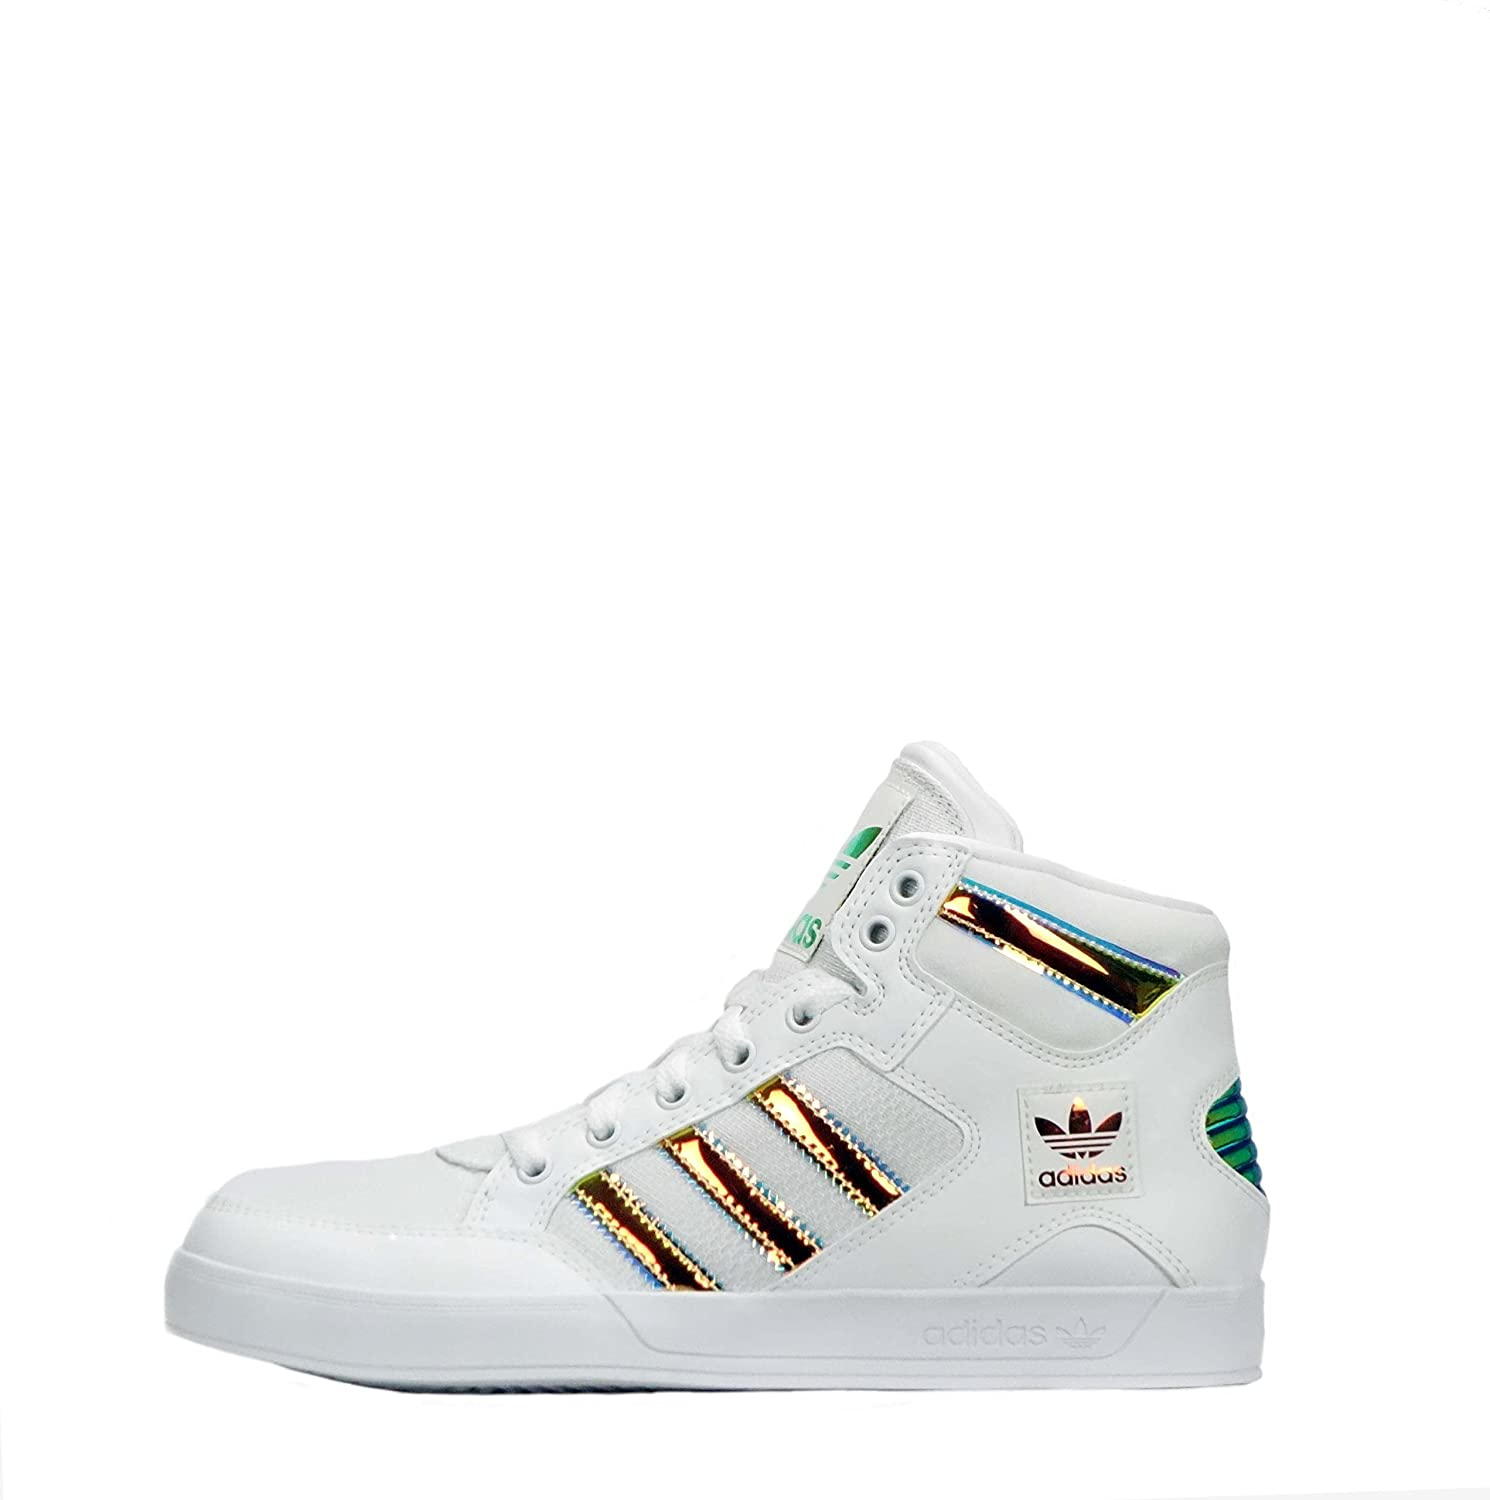 5fadcd925e0a Adidas Original Hardcourt Hi Gold farbpassiviert Kinder Junior Schuhe -  associate-degree.de